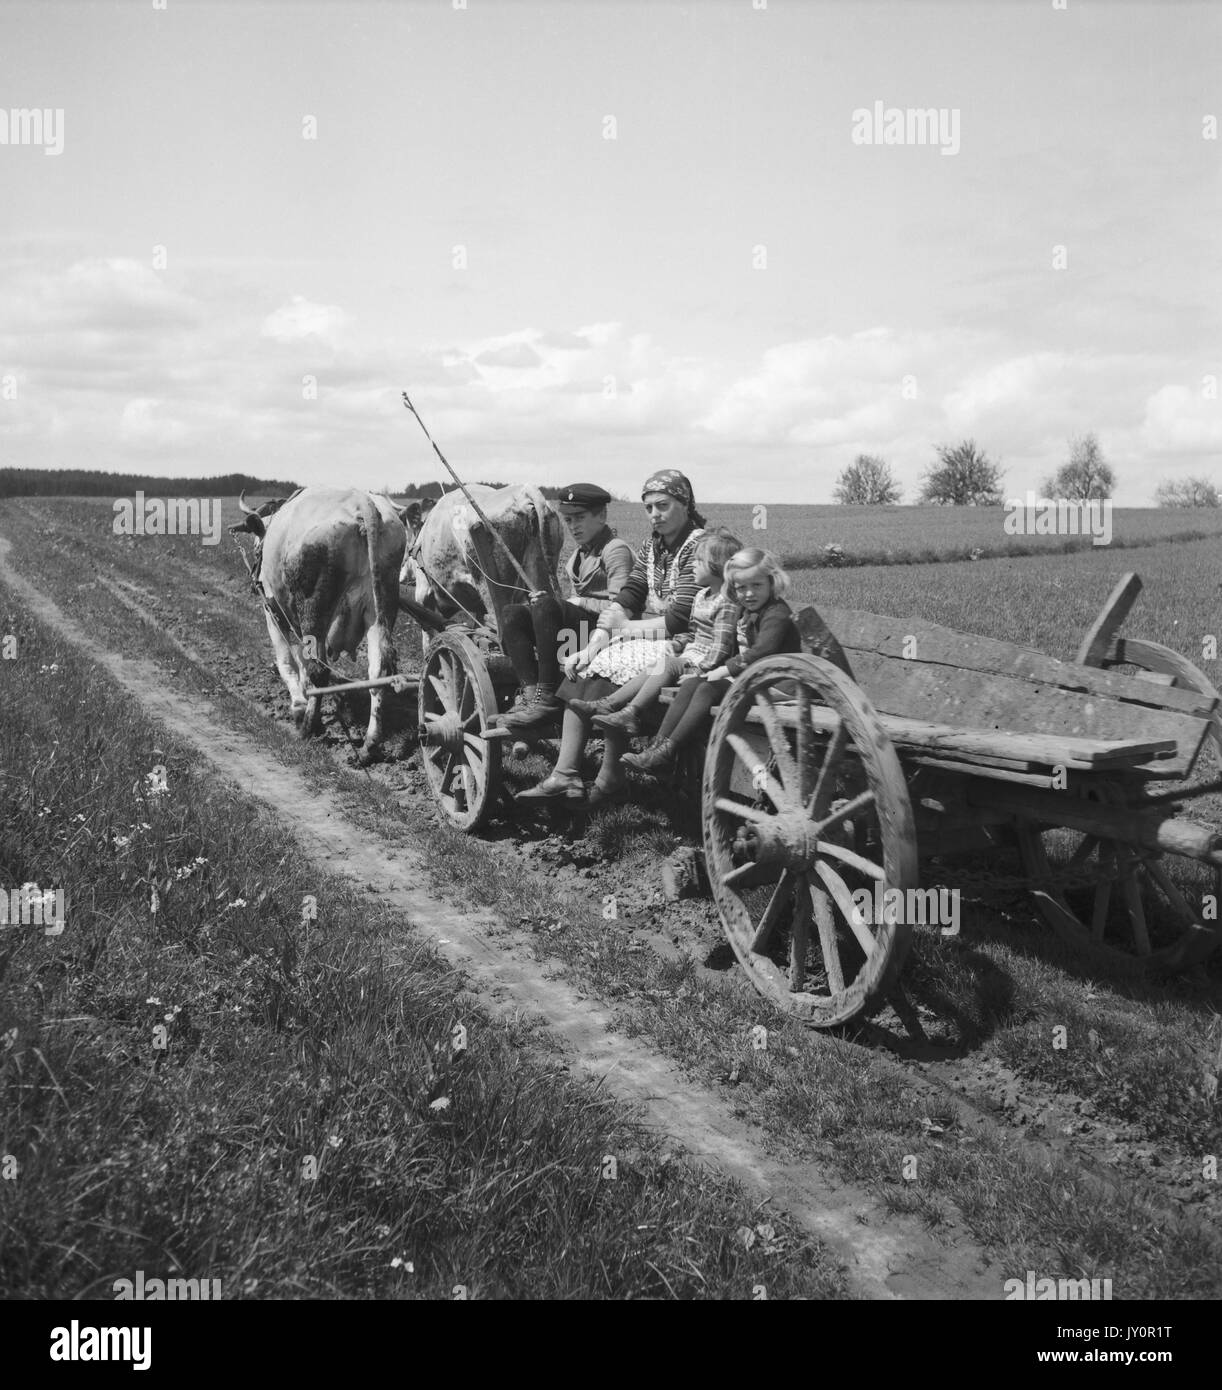 Oxen Pulling Cart Black and White Stock Photos & Images - Alamy